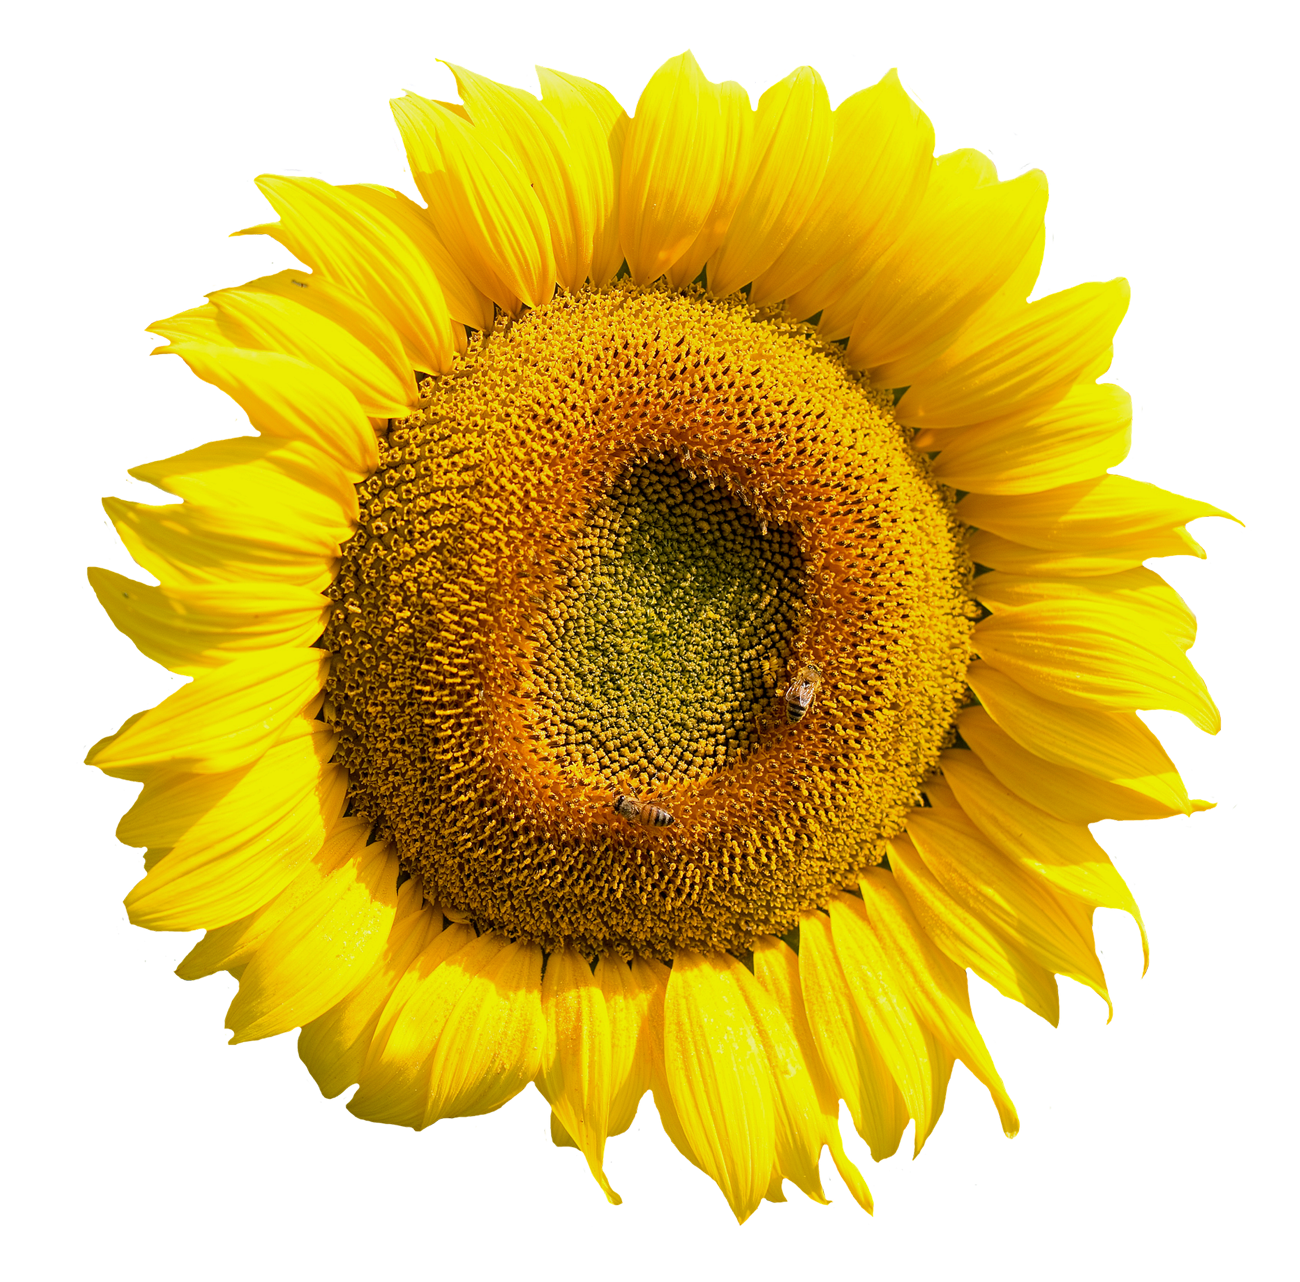 Yellow Sunflower Flower